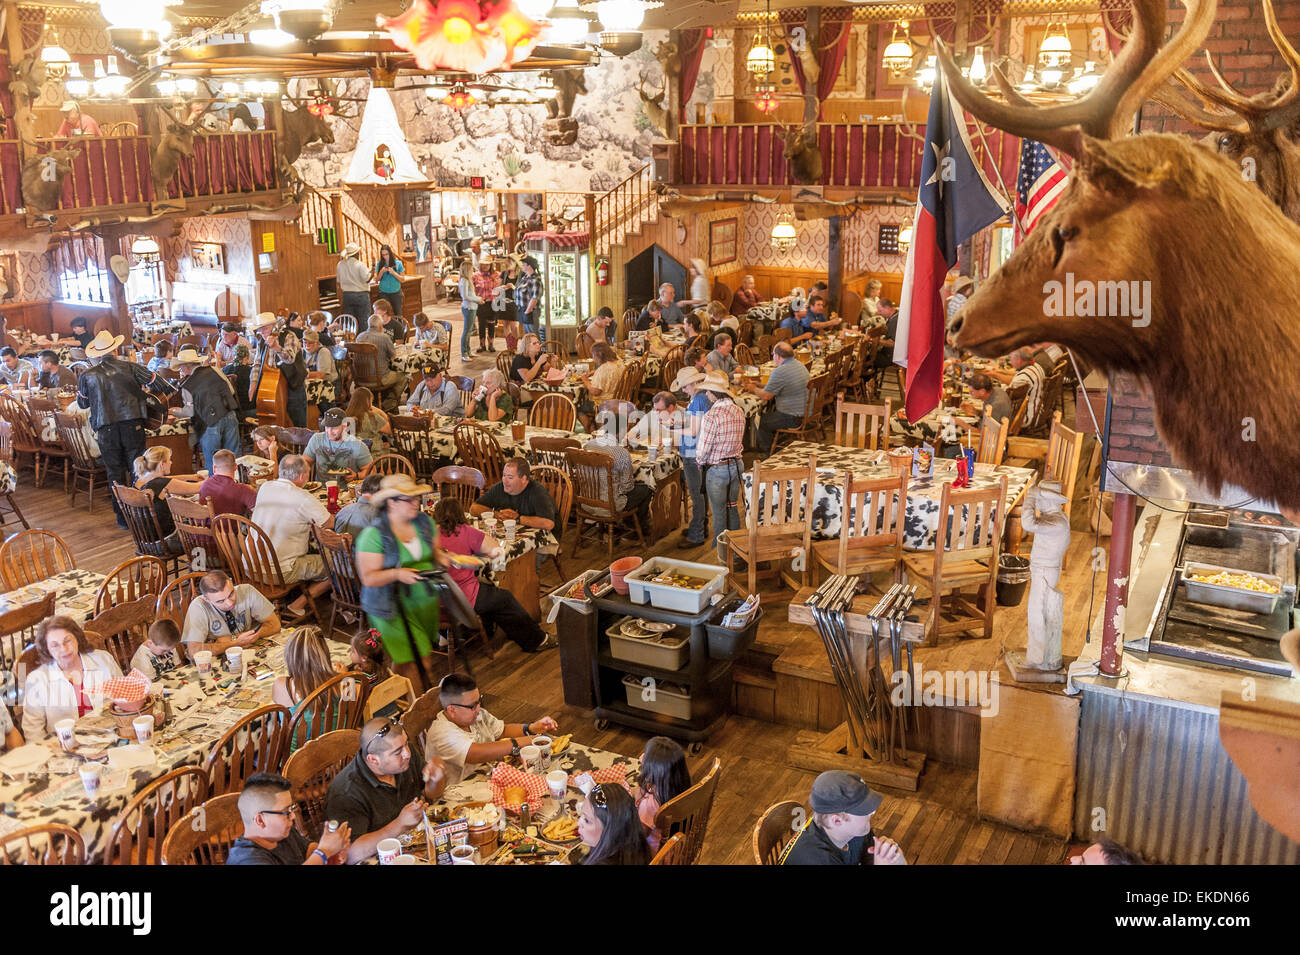 the big texan steak house restaurant photos the big texan steak house restaurant images alamy. Black Bedroom Furniture Sets. Home Design Ideas